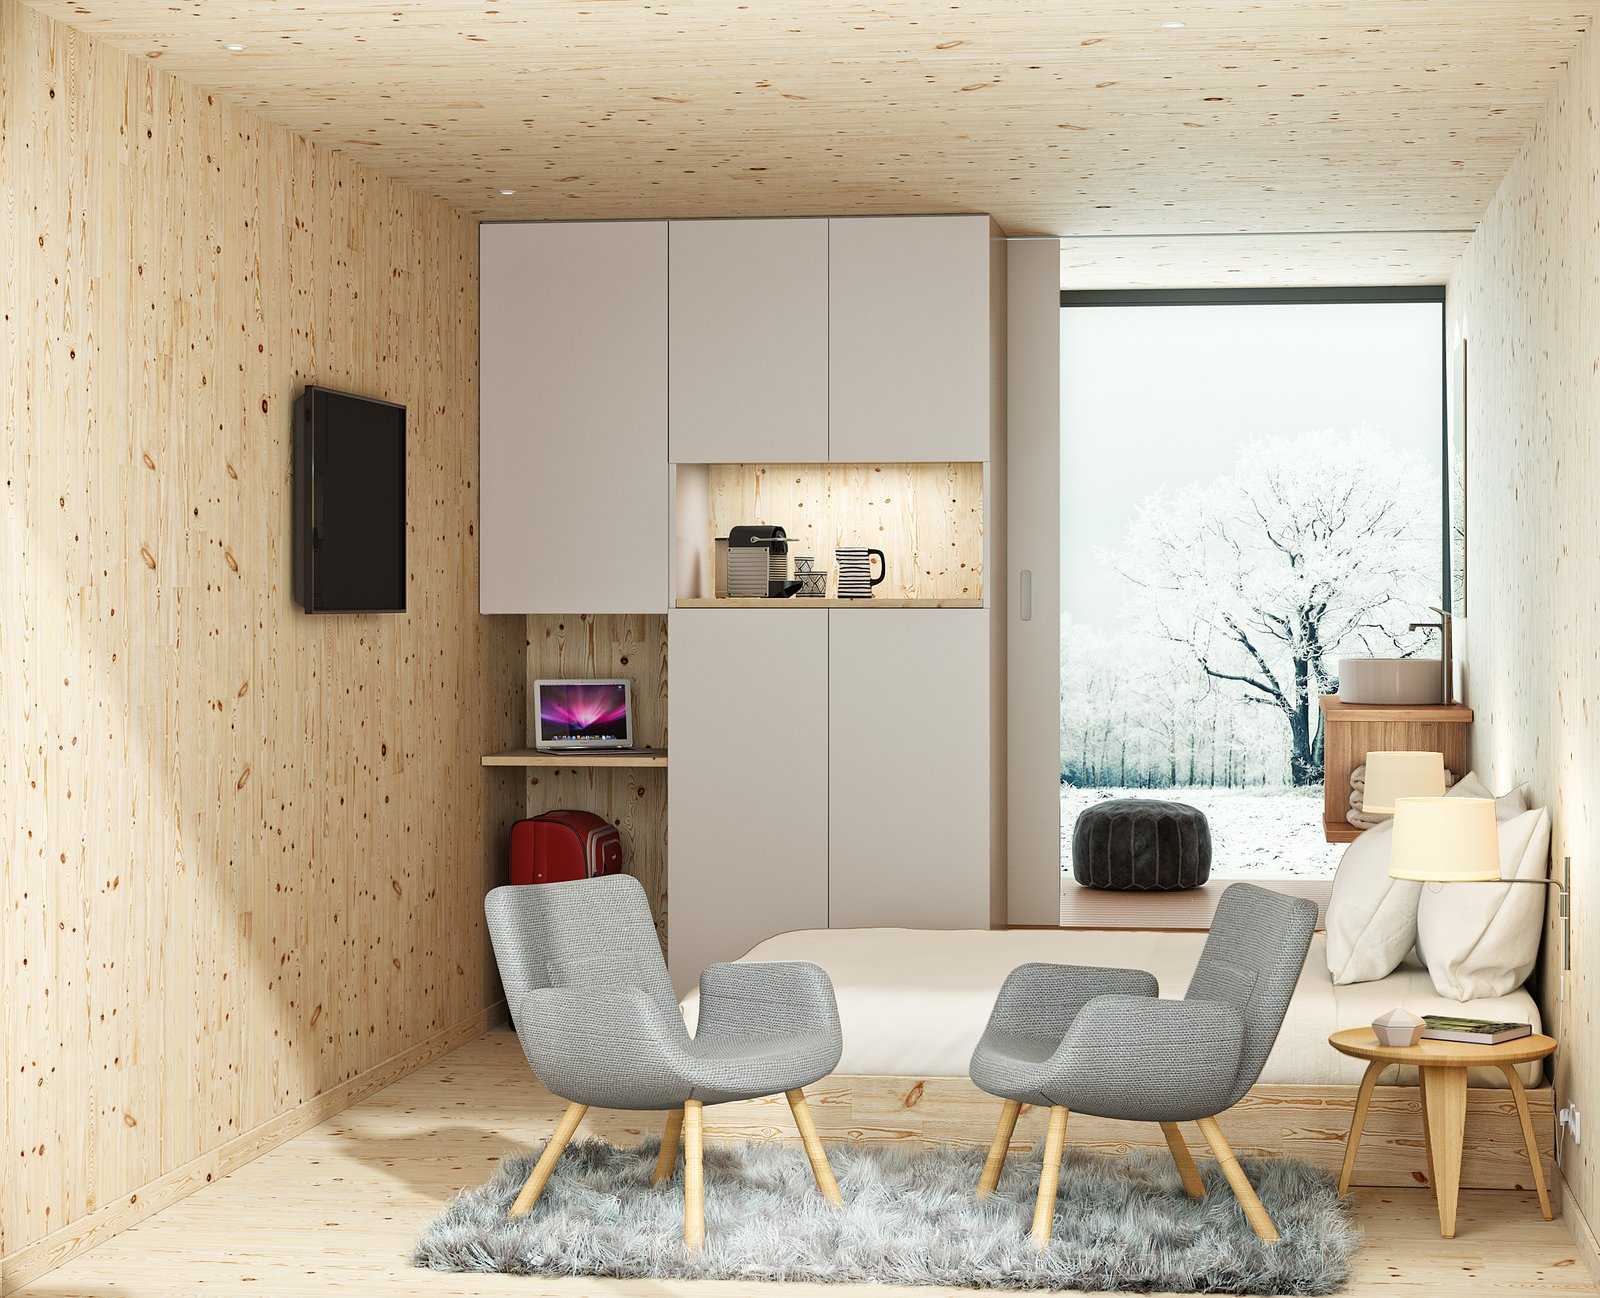 Chair, Bedroom, Bed, Night Stands, Storage, Wall Lighting, Plywood Floor, and Light Hardwood Floor  Photo 7 of 9 in This Modular Eco-Hotel Room Is Poised to Drop Into Nearly Any Setting